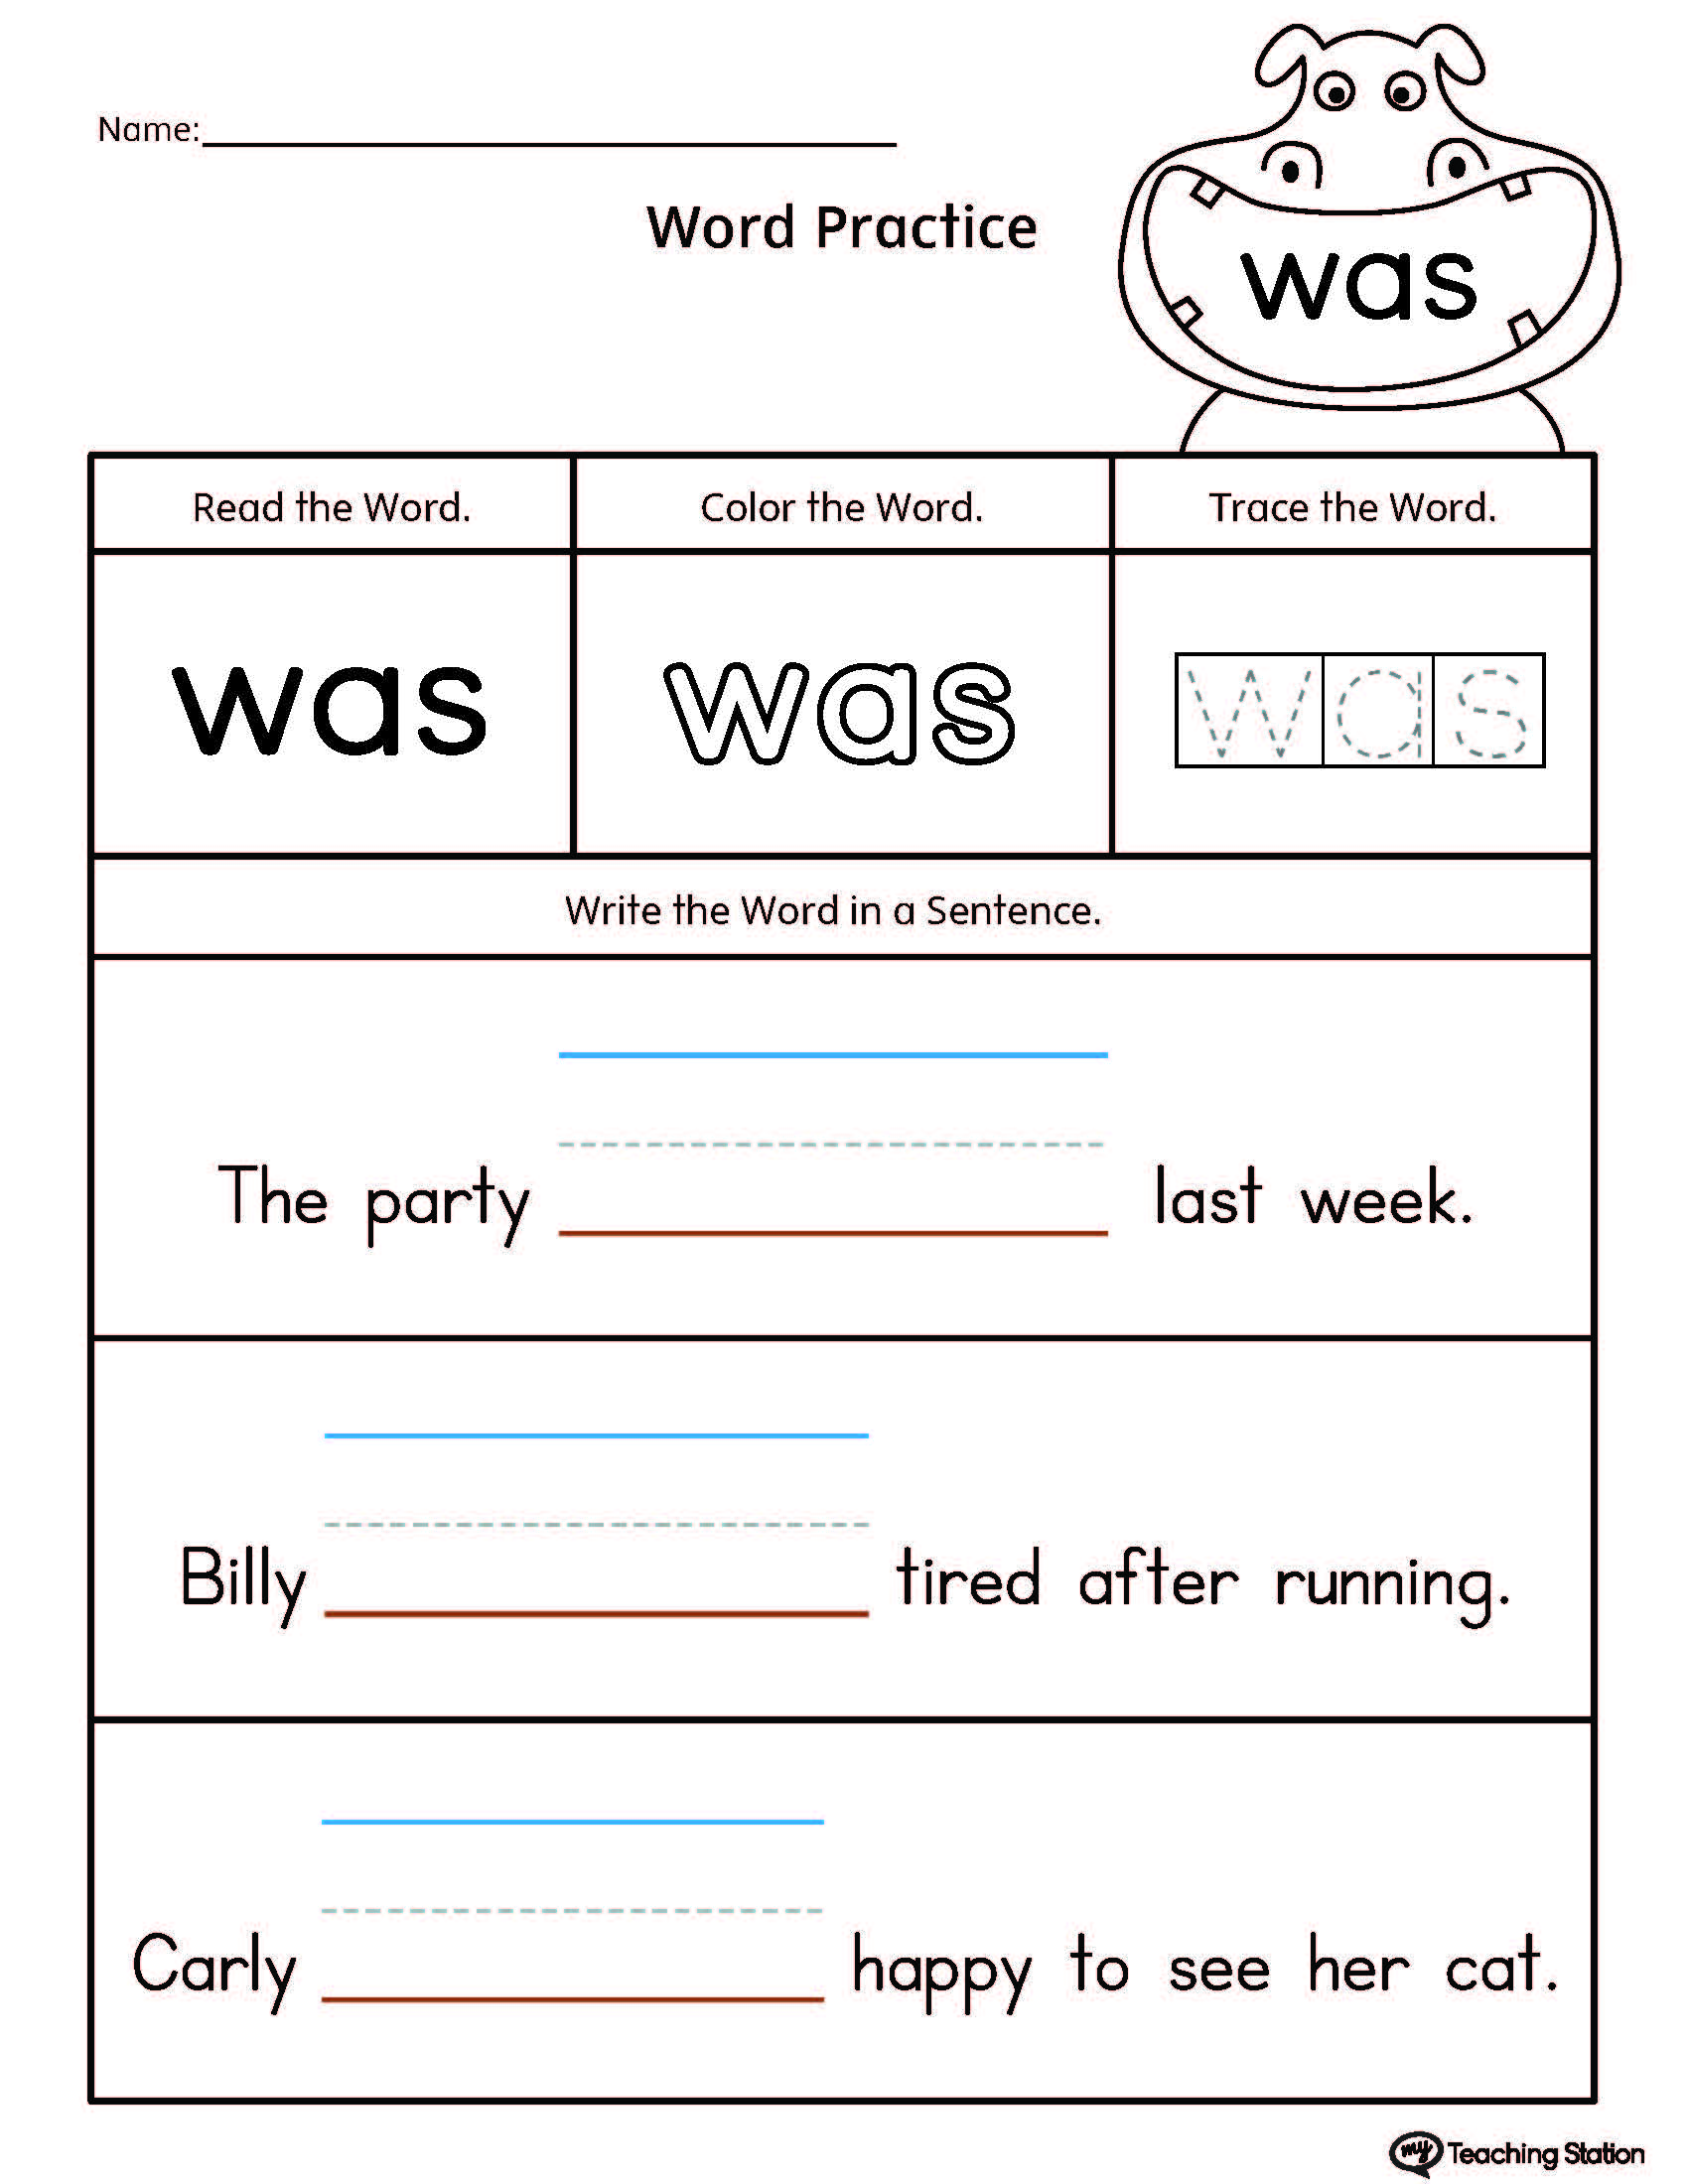 worksheet Sentence Structure Worksheets For Kindergarten kindergarten printable worksheets myteachingstation com build sentences using sight word was